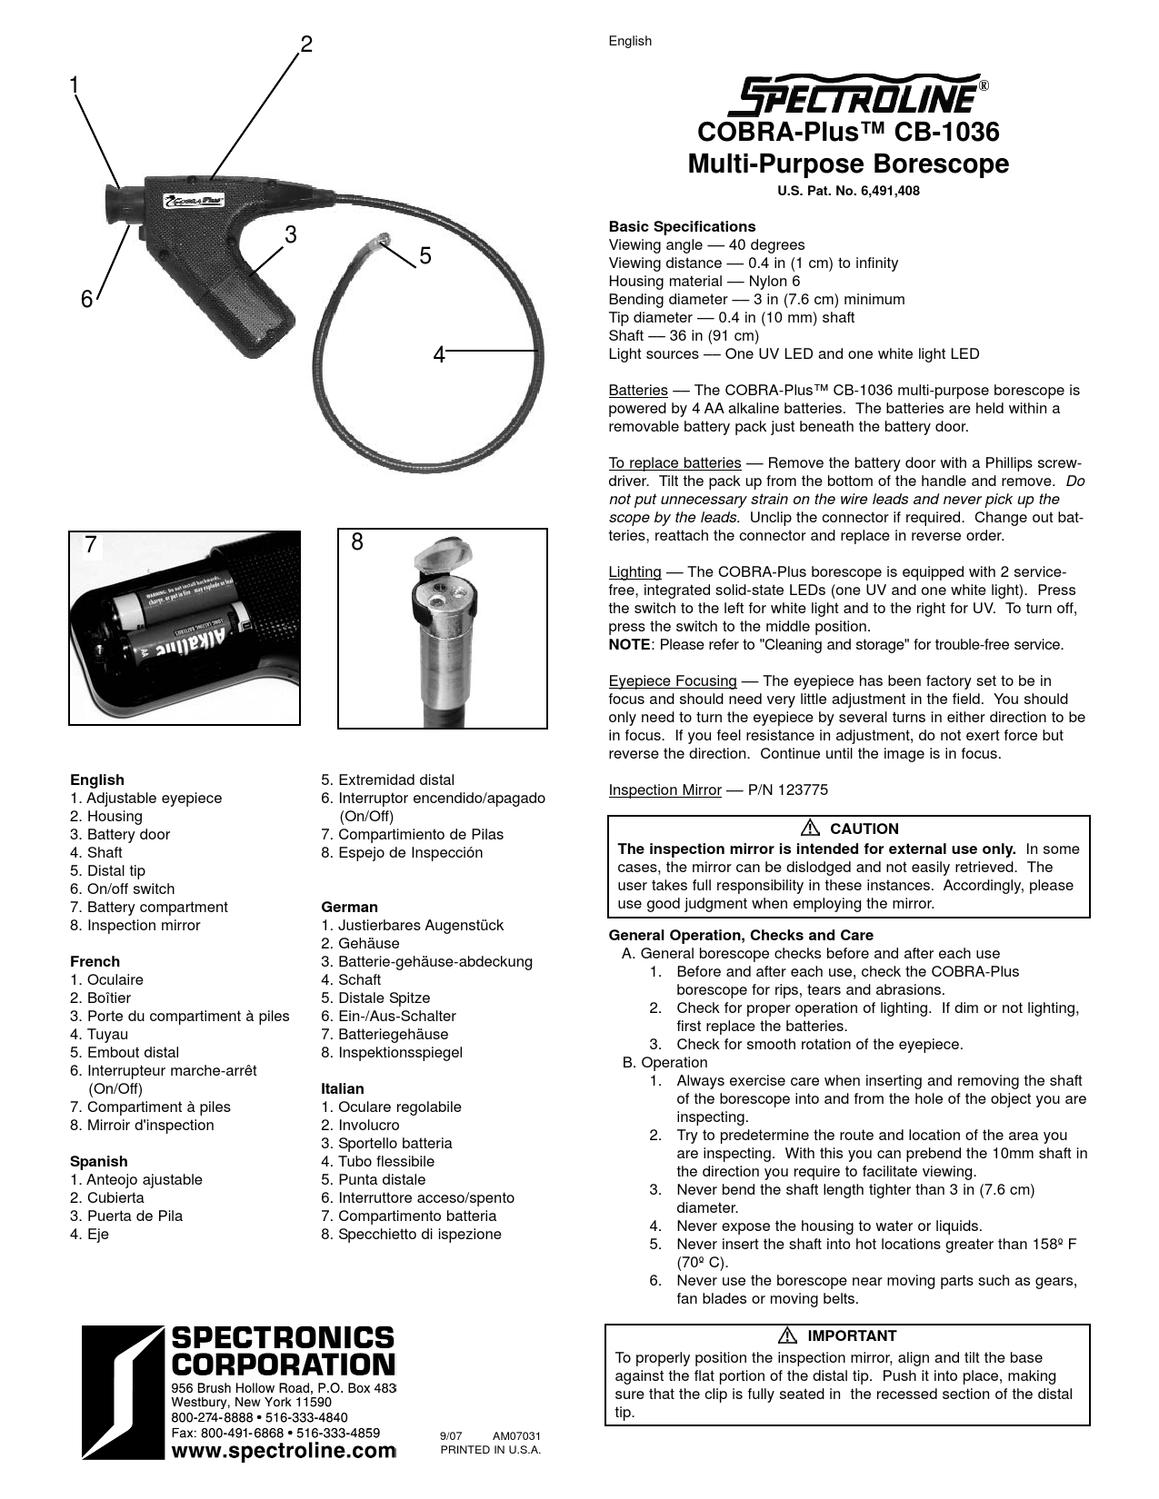 COBRA Plus CB-1036 Instrux Sheet M-L AM07031 by